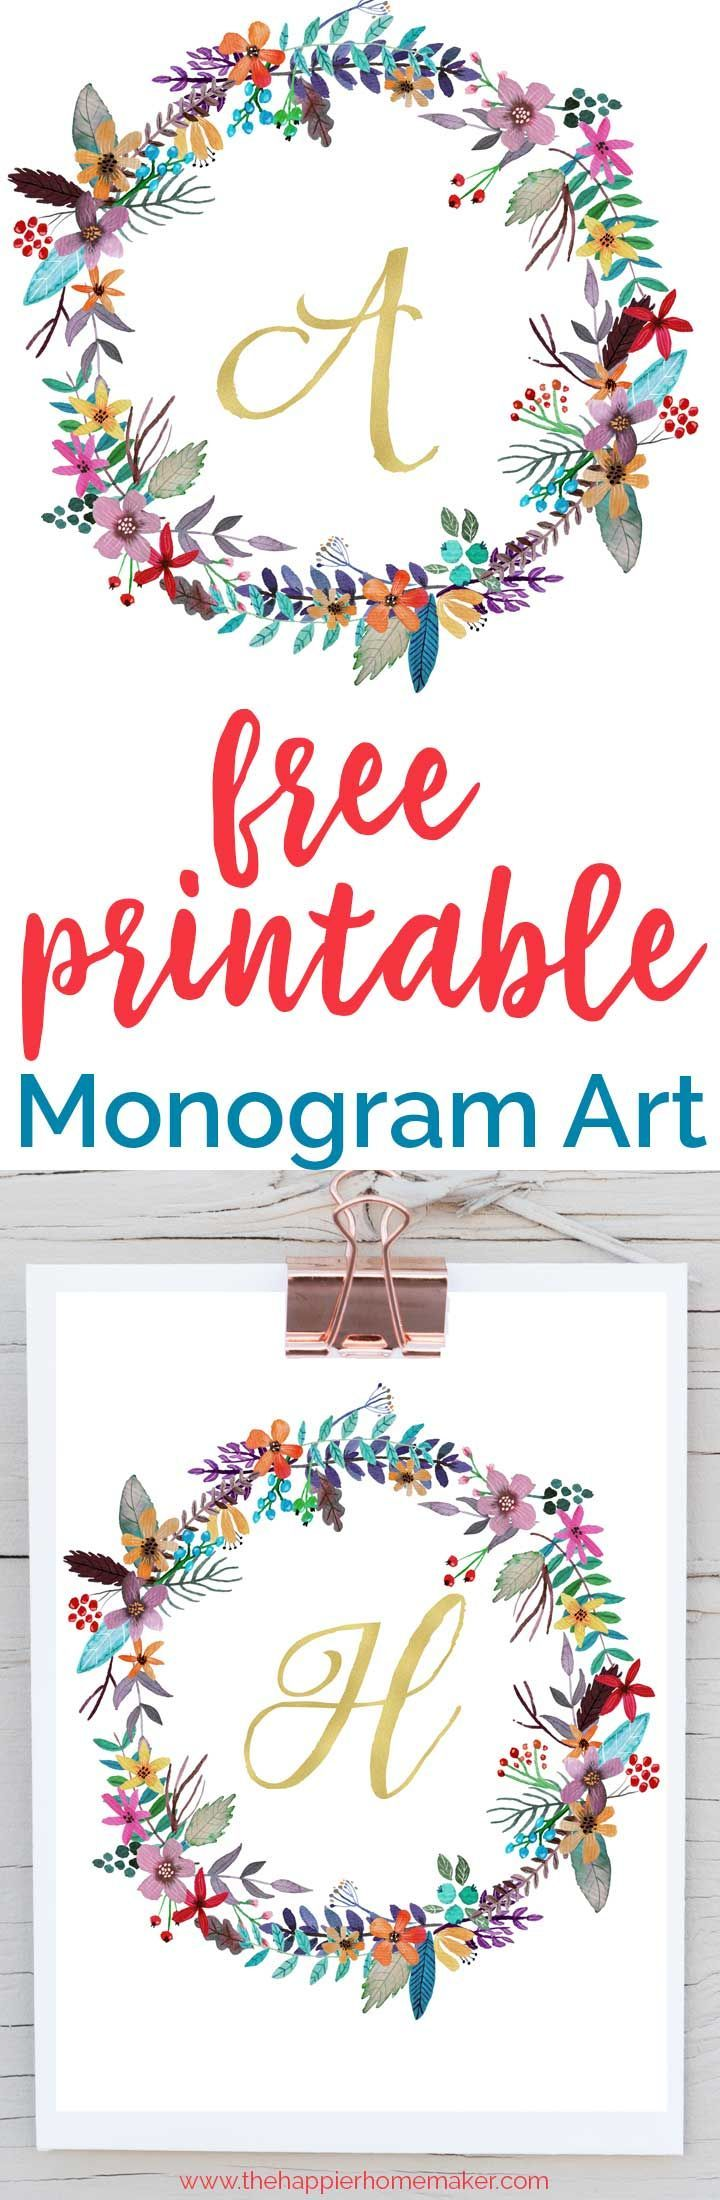 Delightful Beautiful Free Printable Monogram Art For Your Home These Would Be So  Pretty In A Nursery Or Gallery Wall! All Letters Of The Alphabet Available!